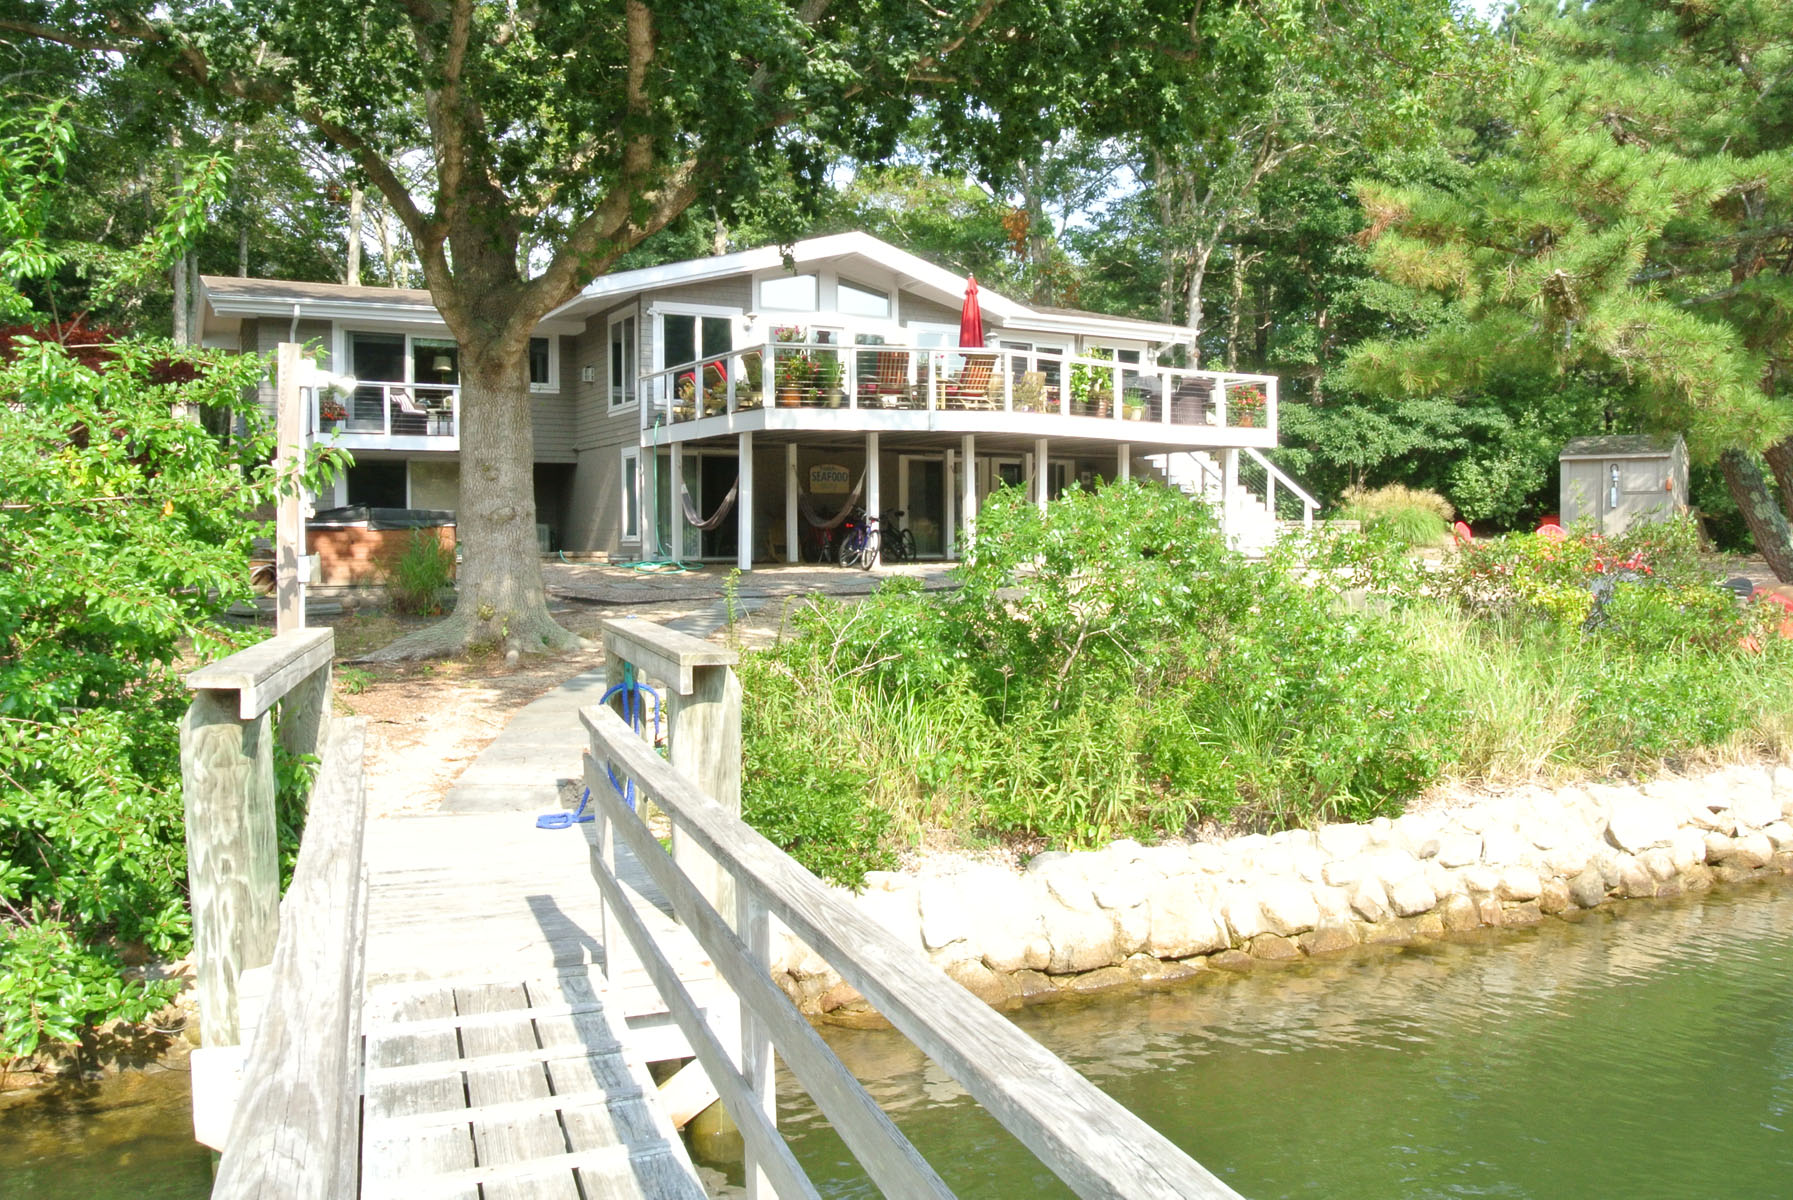 Villa per Vendita alle ore WATERFRONT HOME WITH DOCK 14 Capstan Circle New Seabury, Massachusetts, 02649 Stati Uniti